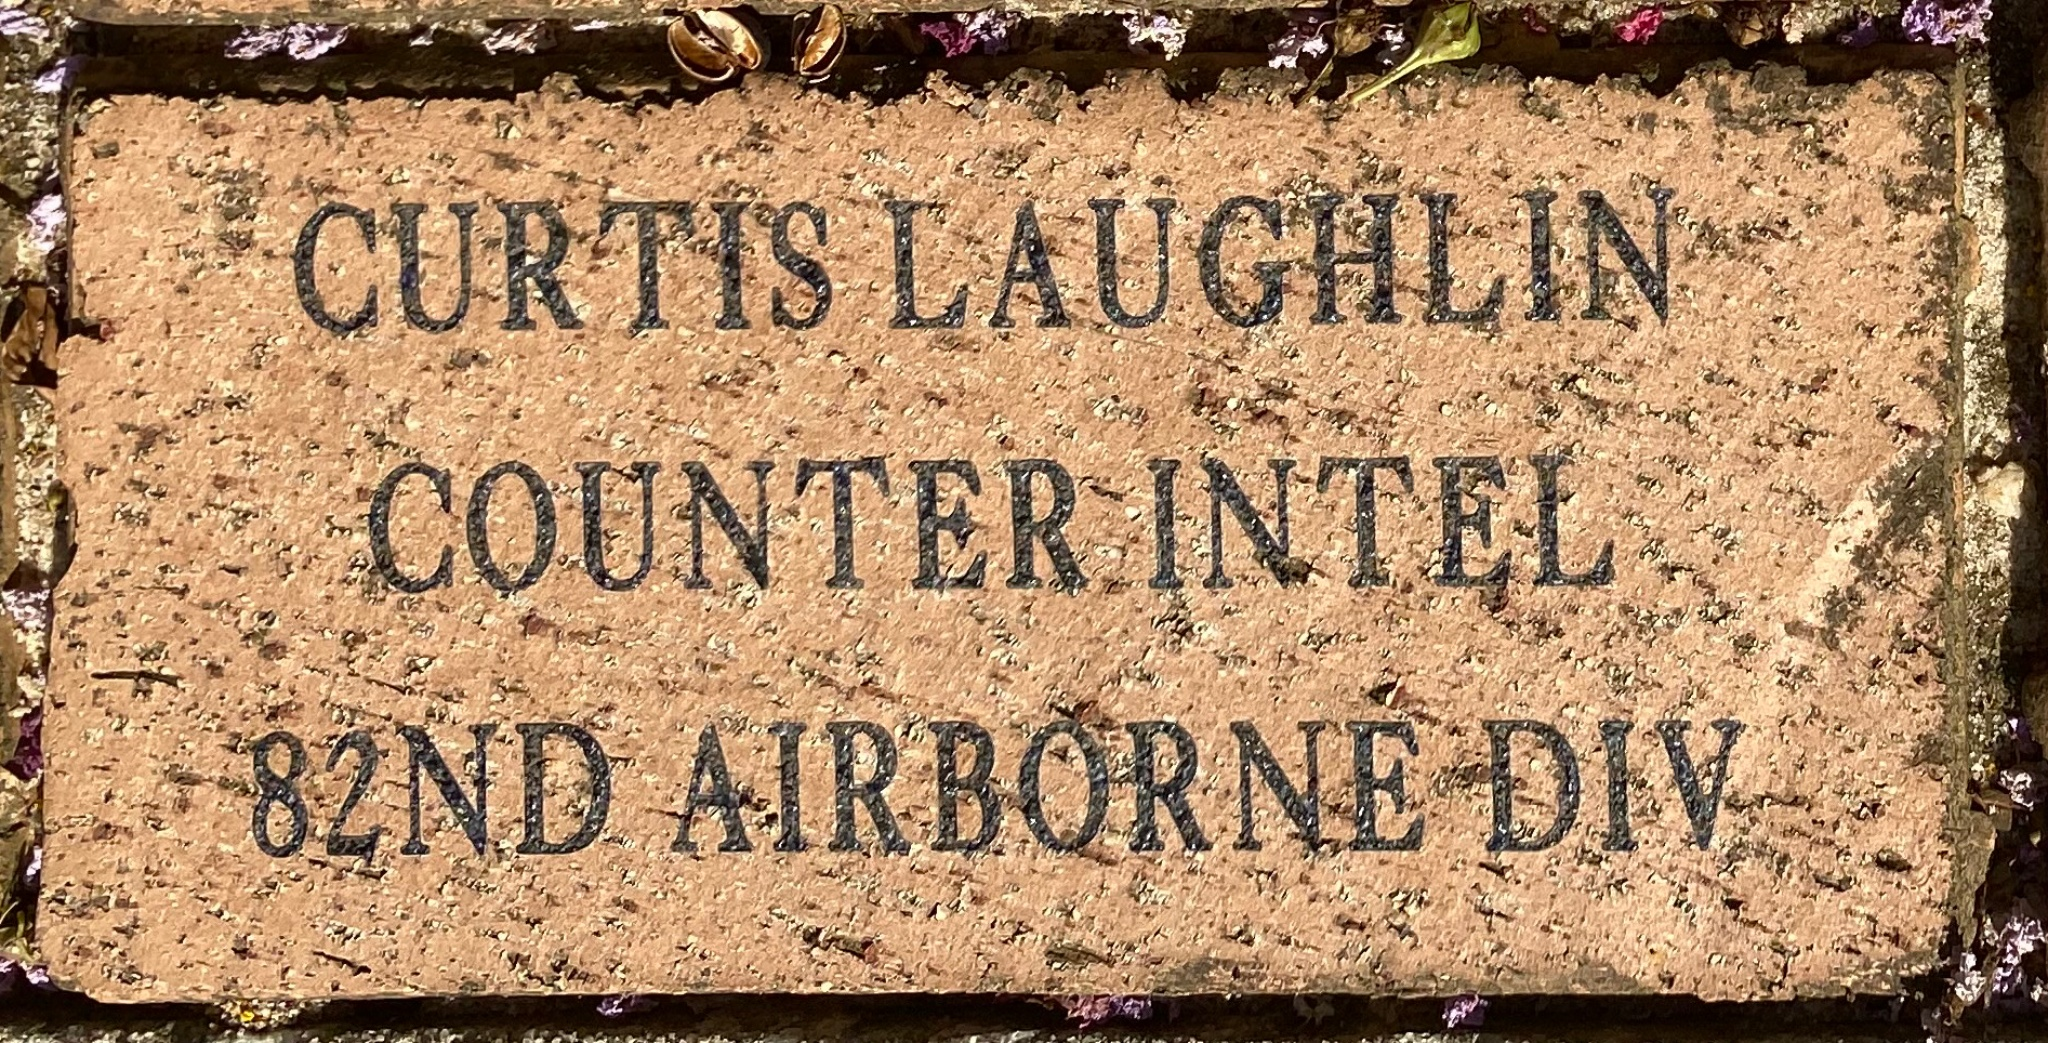 CURTIS LAUGHLIN COUNTER INTEL 82ND AIRBORNE DIV